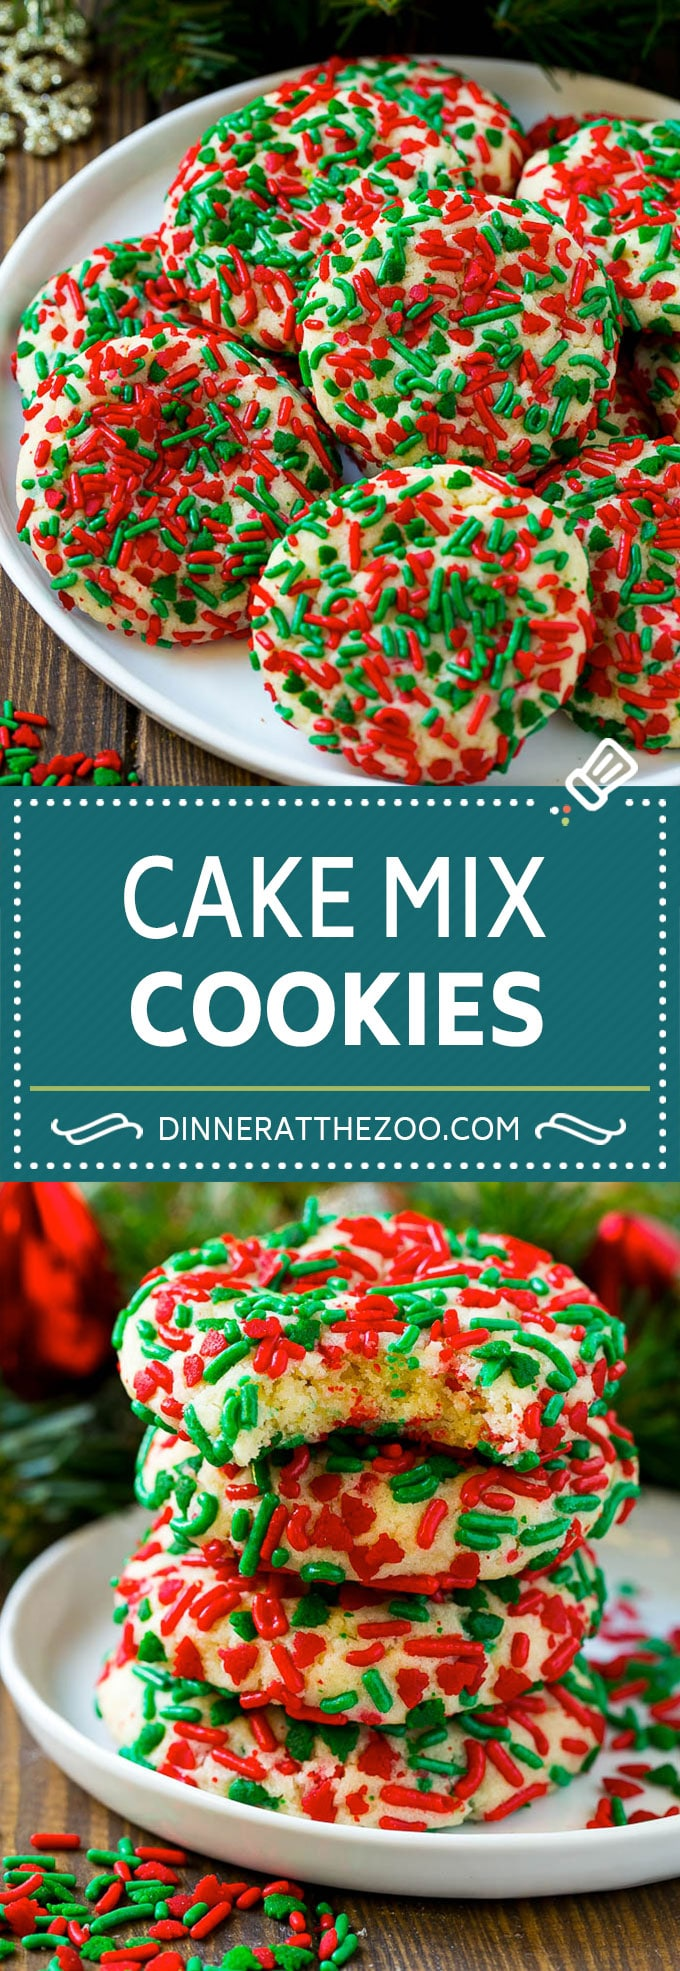 Cake Mix Cookies - Dinner at the Zoo